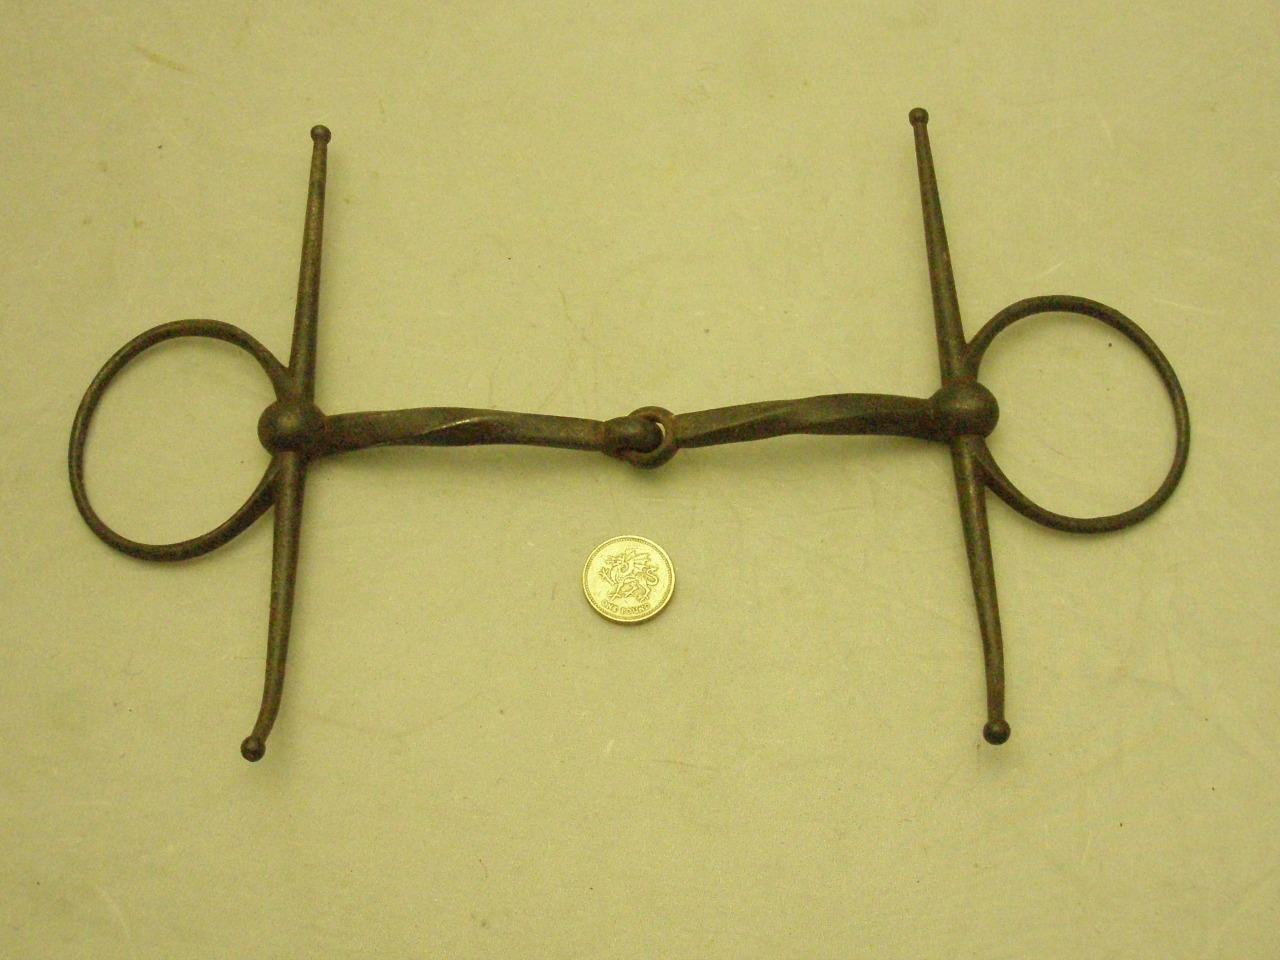 ANTIQUE IRON FULL CHEEK TWISTED SNAFFLE BIT - 6 1 4  COLLECTABLE EQUESTRIAN